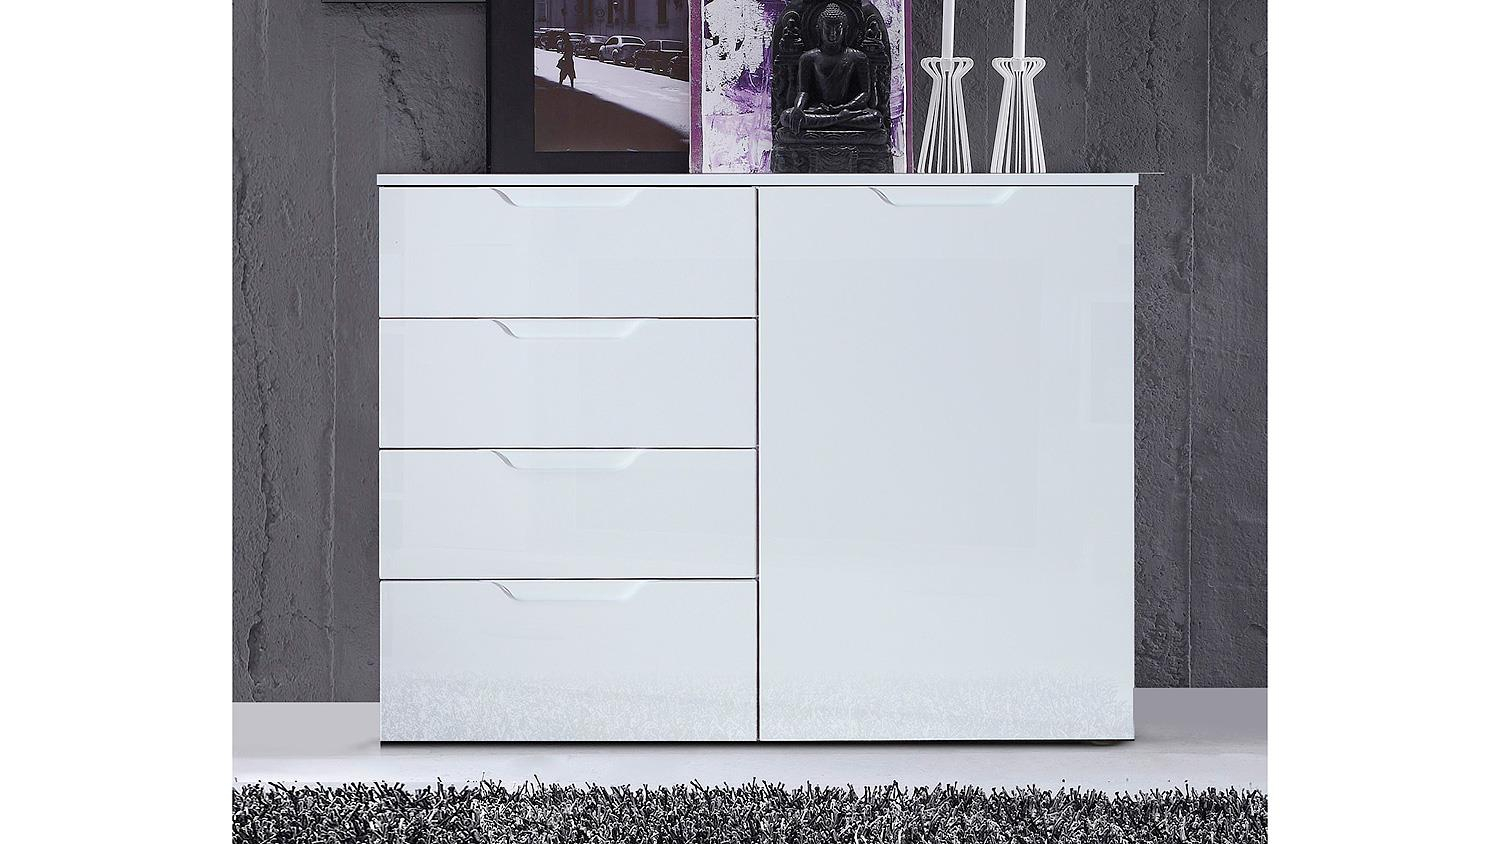 Kommode 1 Sienna Sideboard Anrichte In Weiß Hochglanz With Regard To 2017 Sienna Sideboards (#2 of 20)